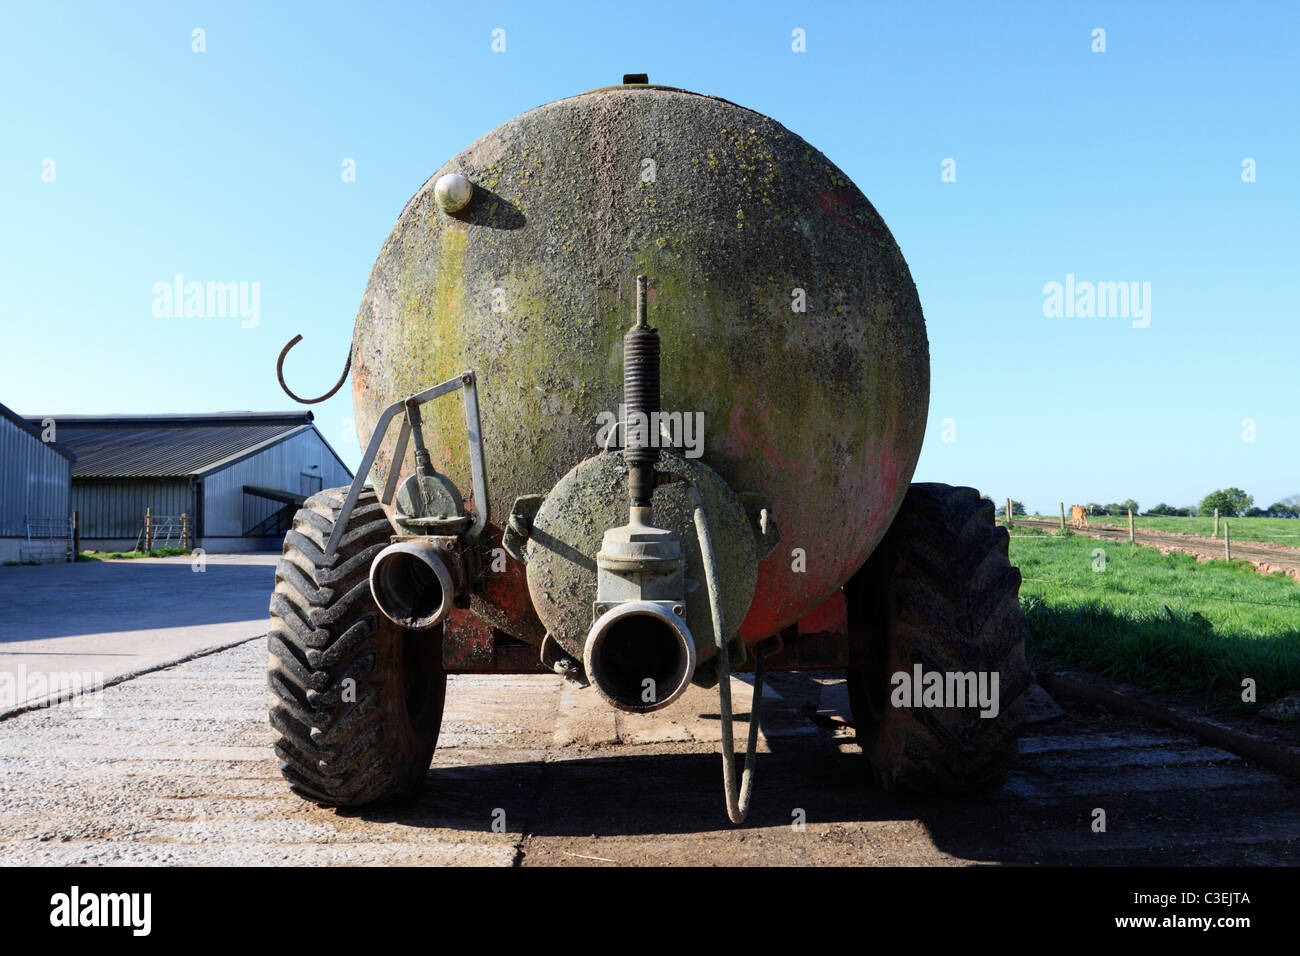 An aging slurry spreader parked on a Shropshire farm - Stock Image